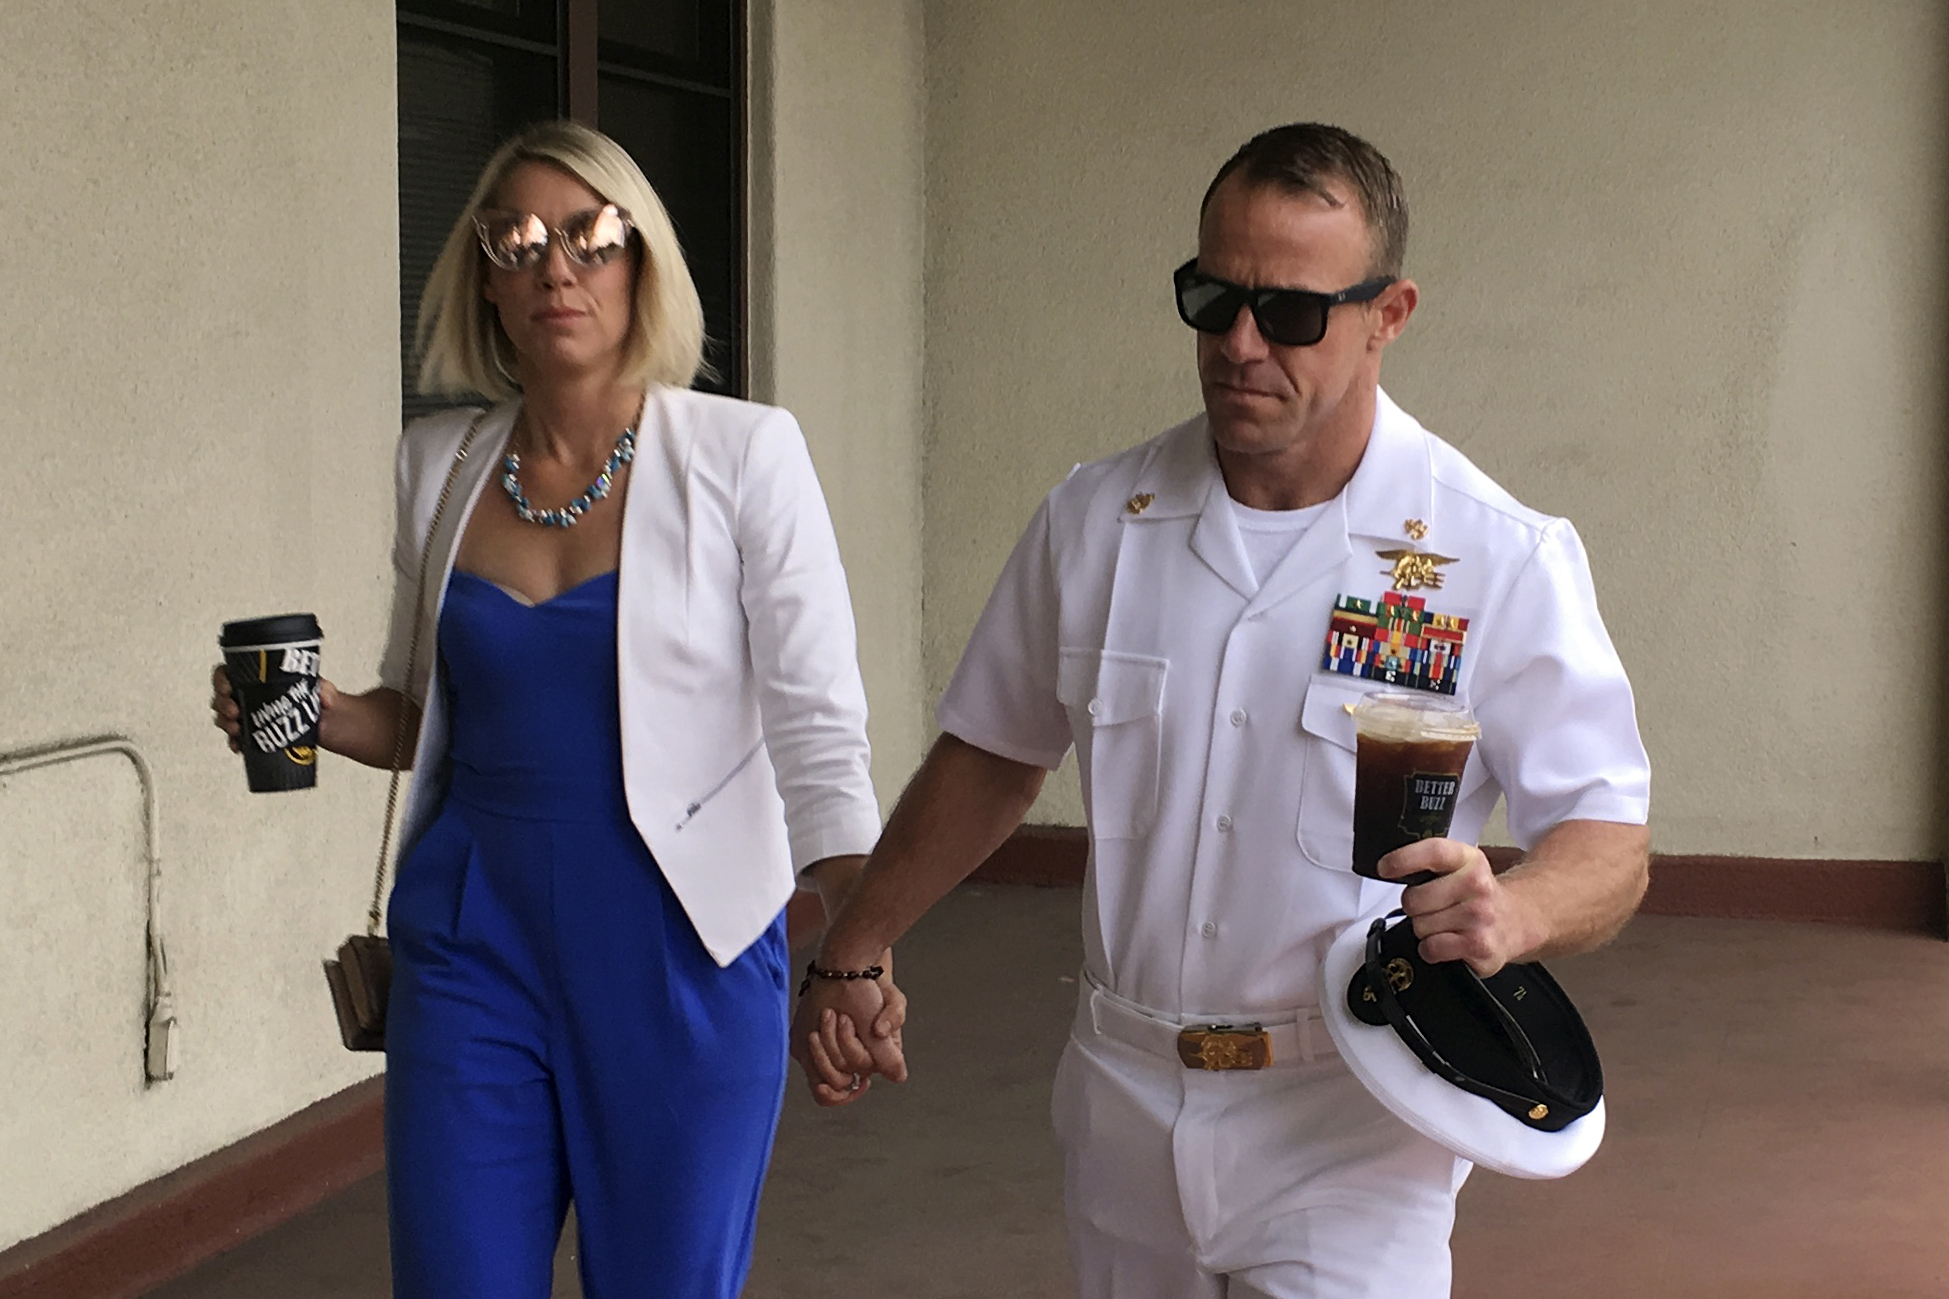 Closing arguments due in Navy SEAL court-martial